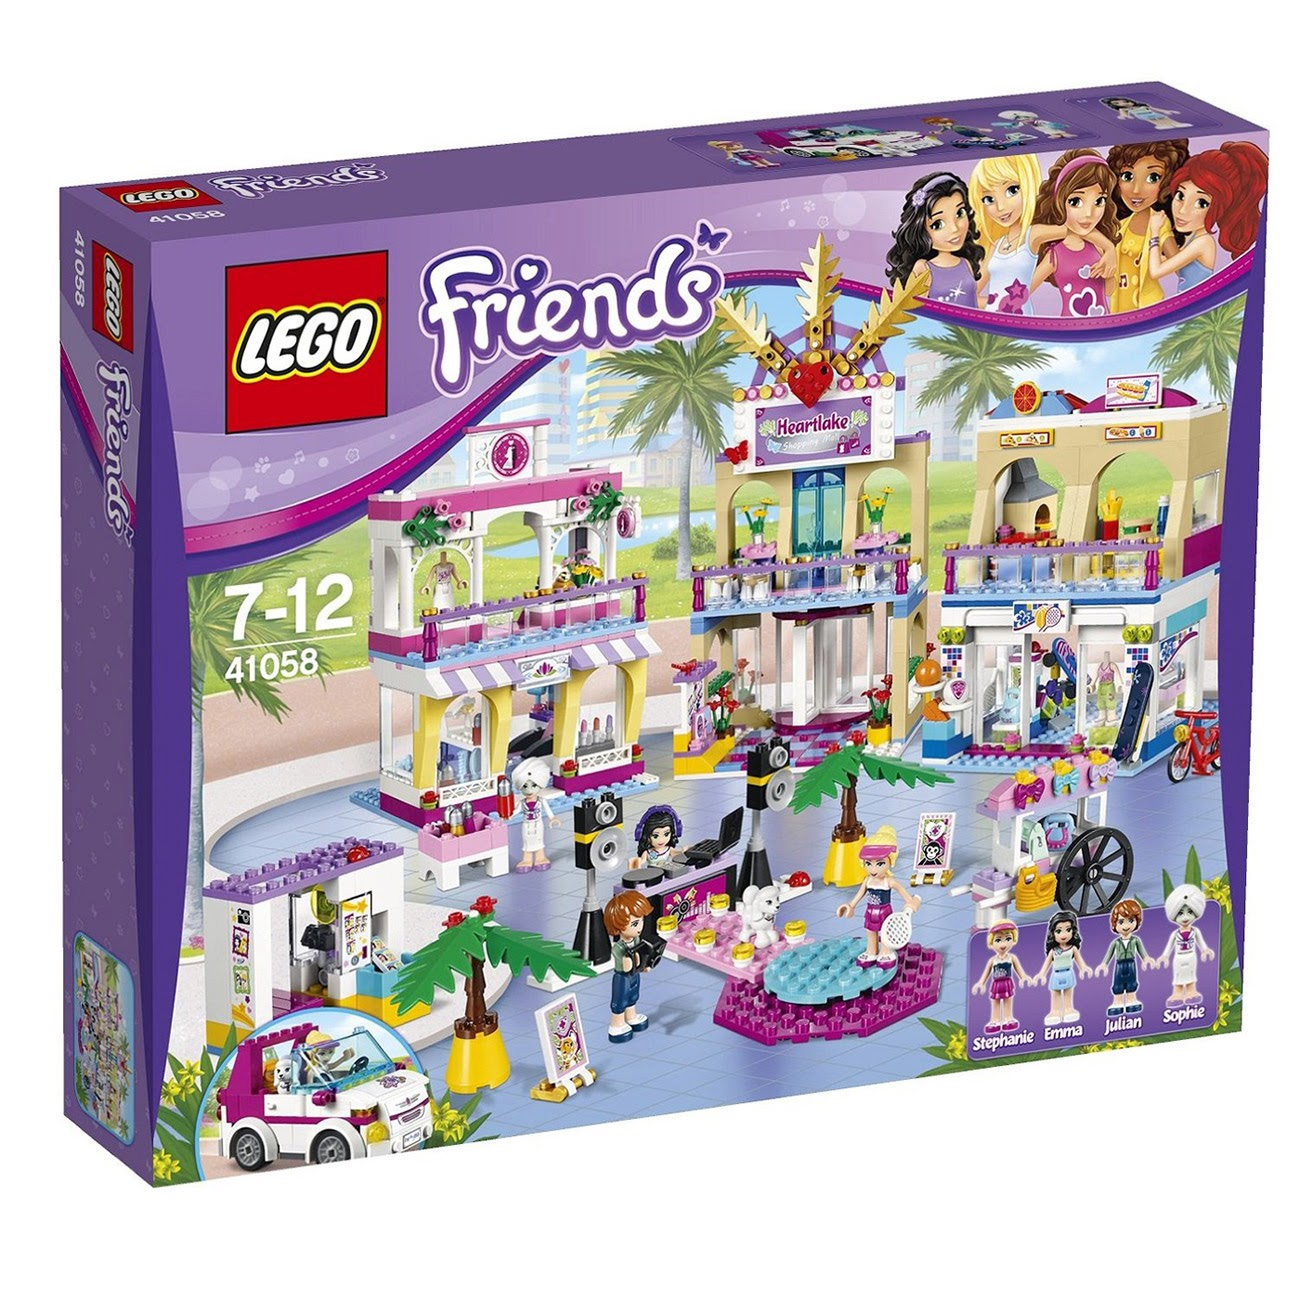 LEGO Friends 2014 Centrum Handlowe Heartbreak - MojeKlocki24.pl